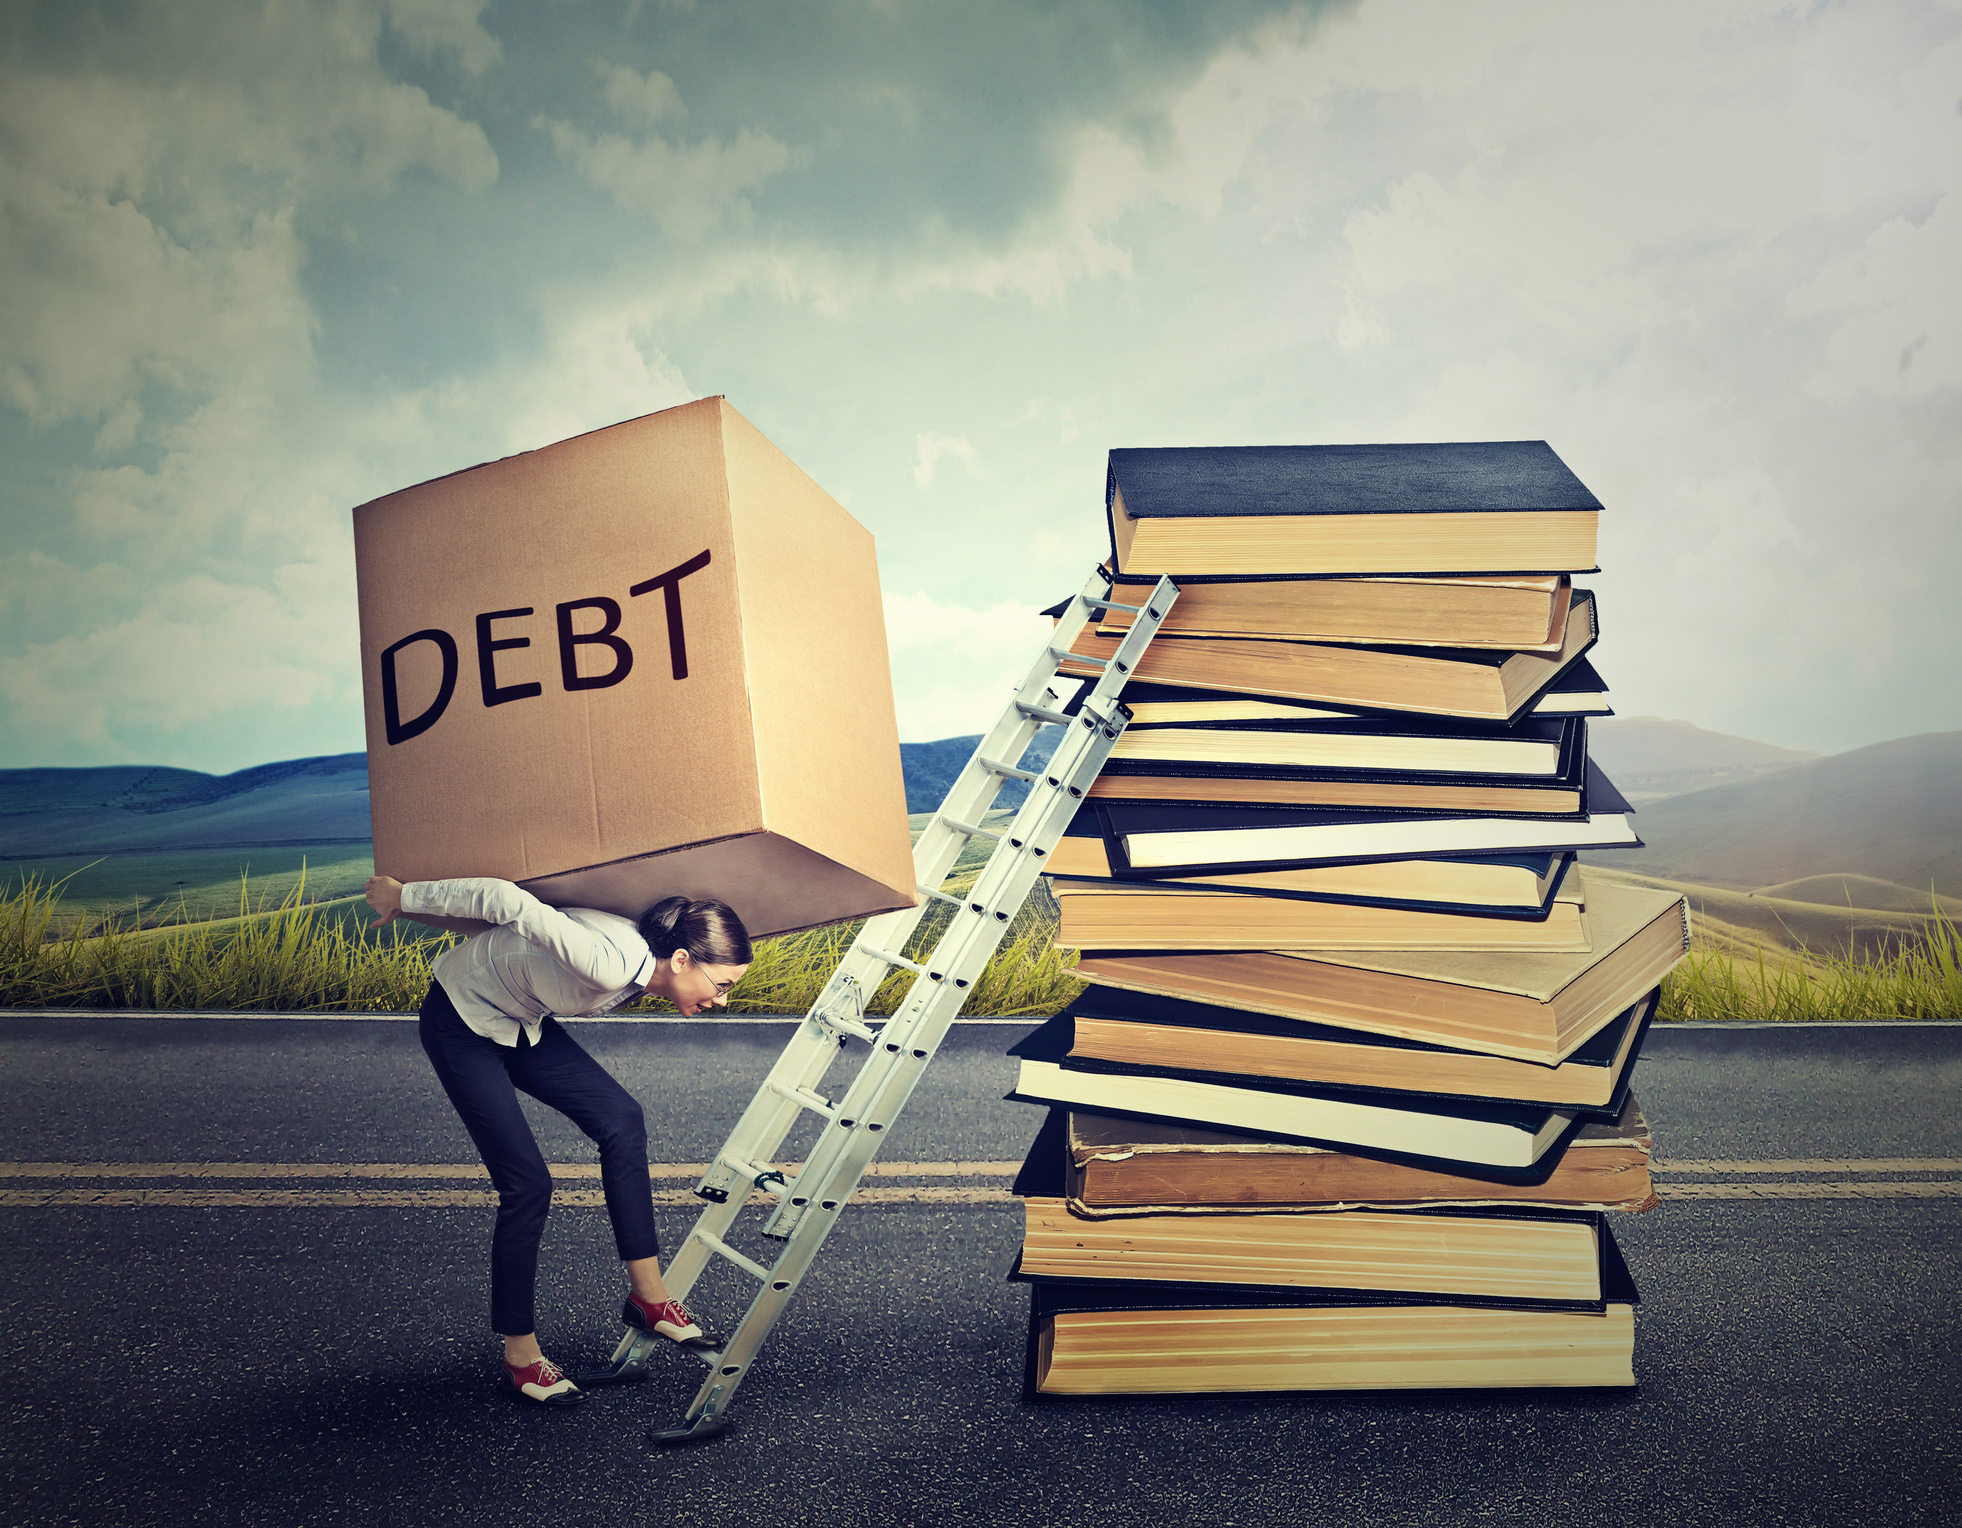 Is it worth getting $100,000 in debt for a school?